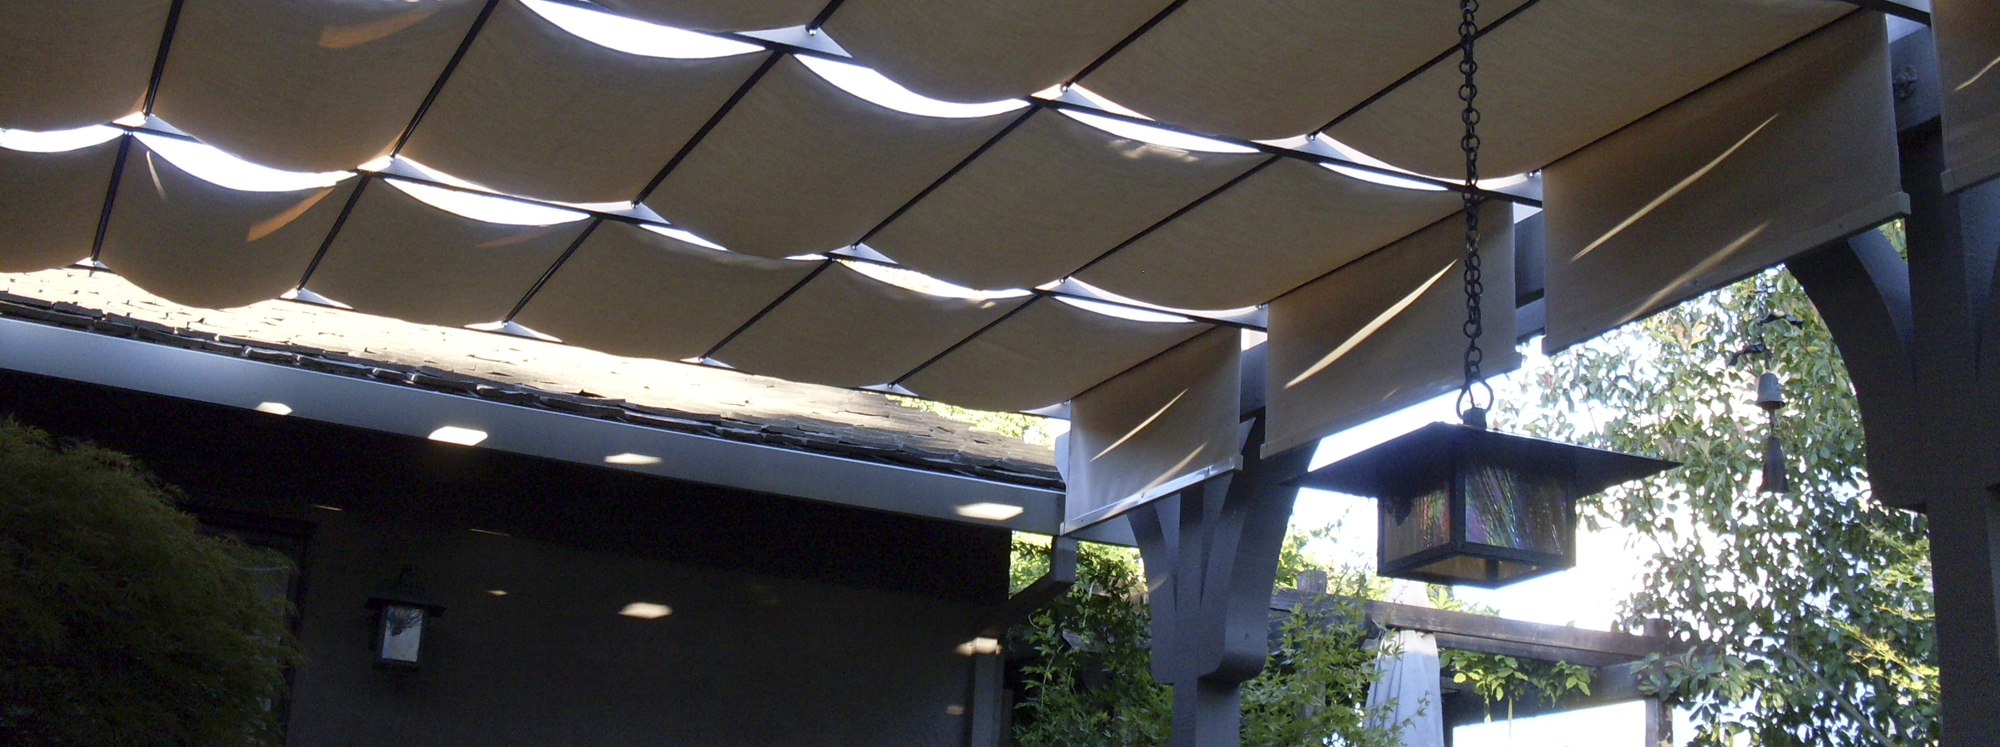 Good Retractable Patio Awnings, Sunshades, Canopies, Roman Shades, Slide Wire,